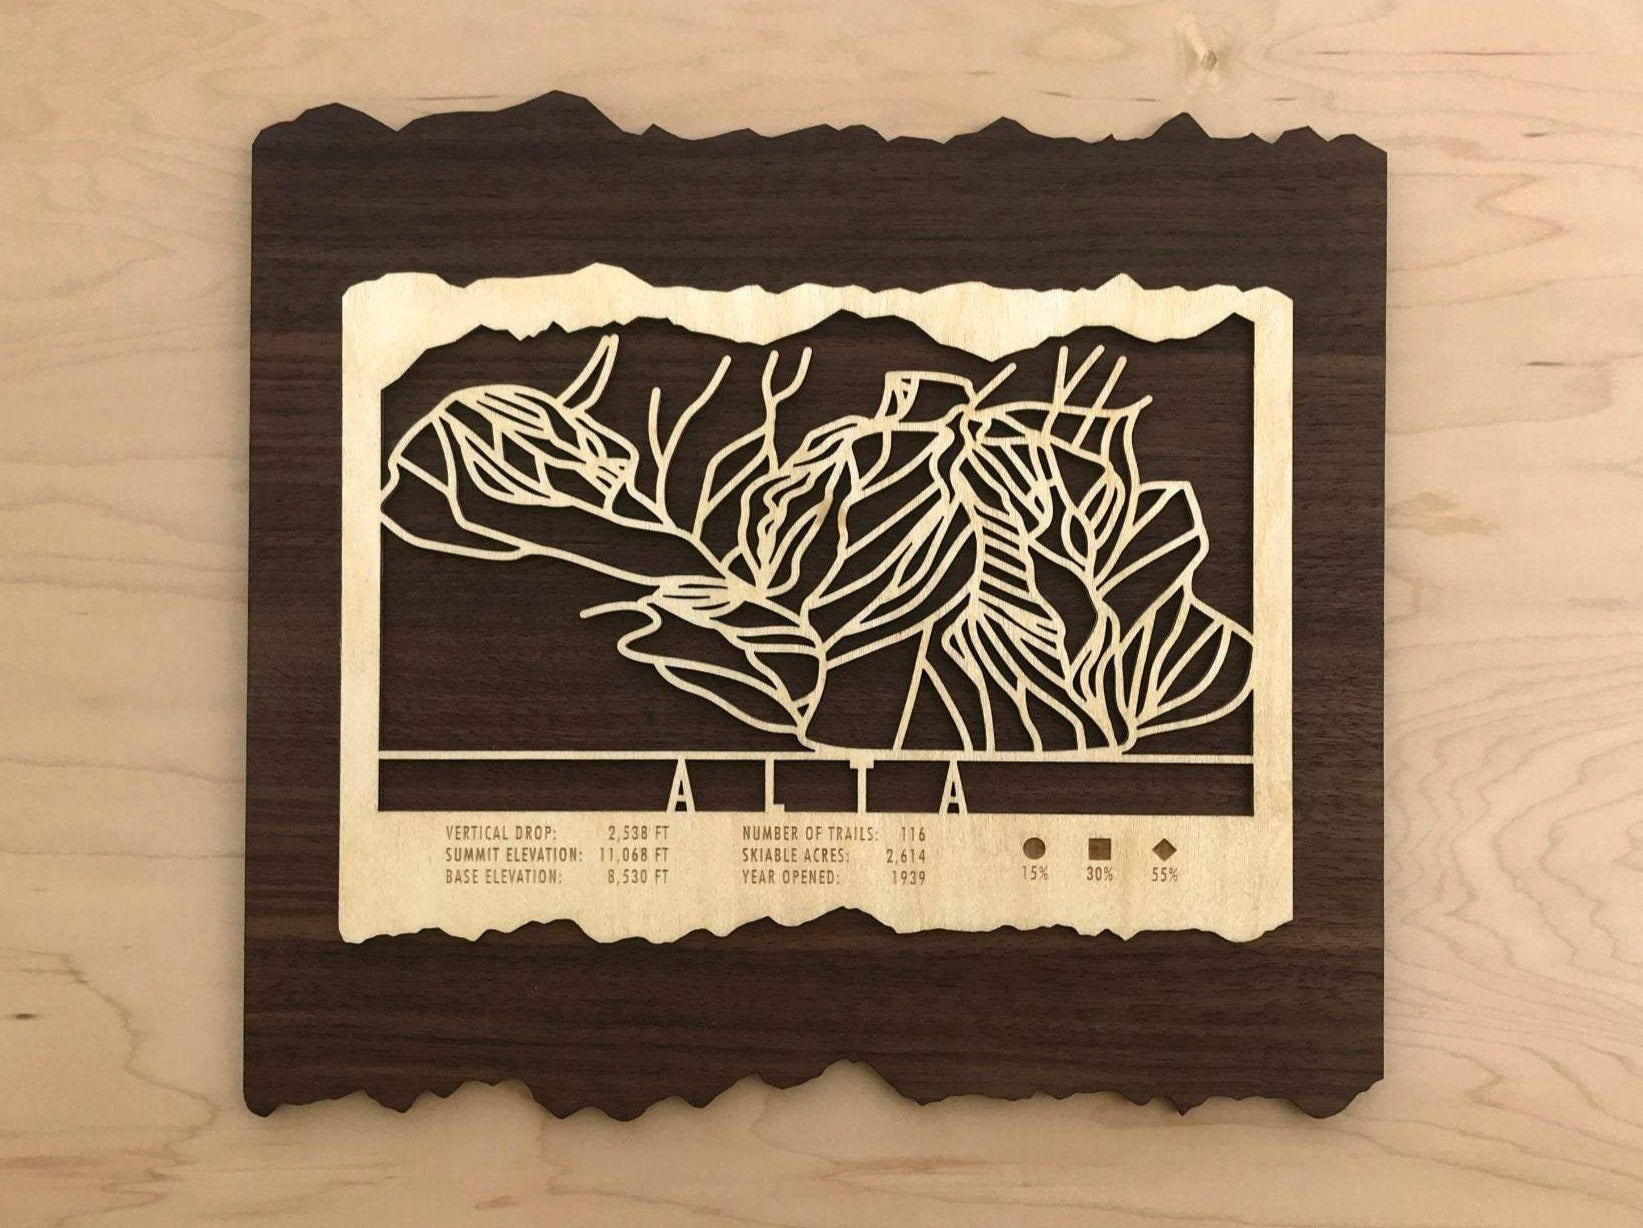 Alta Ski Decor Trail Map Art - MountainCut